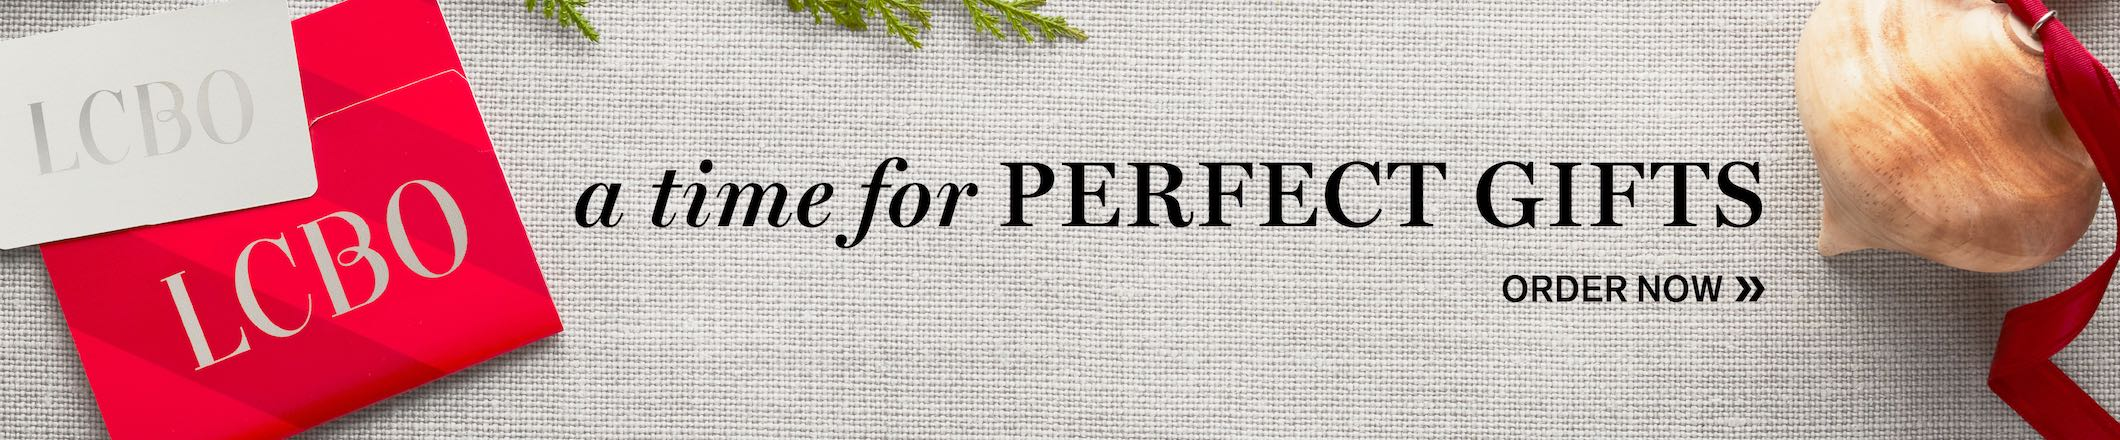 a time for PERFECT GIFTS